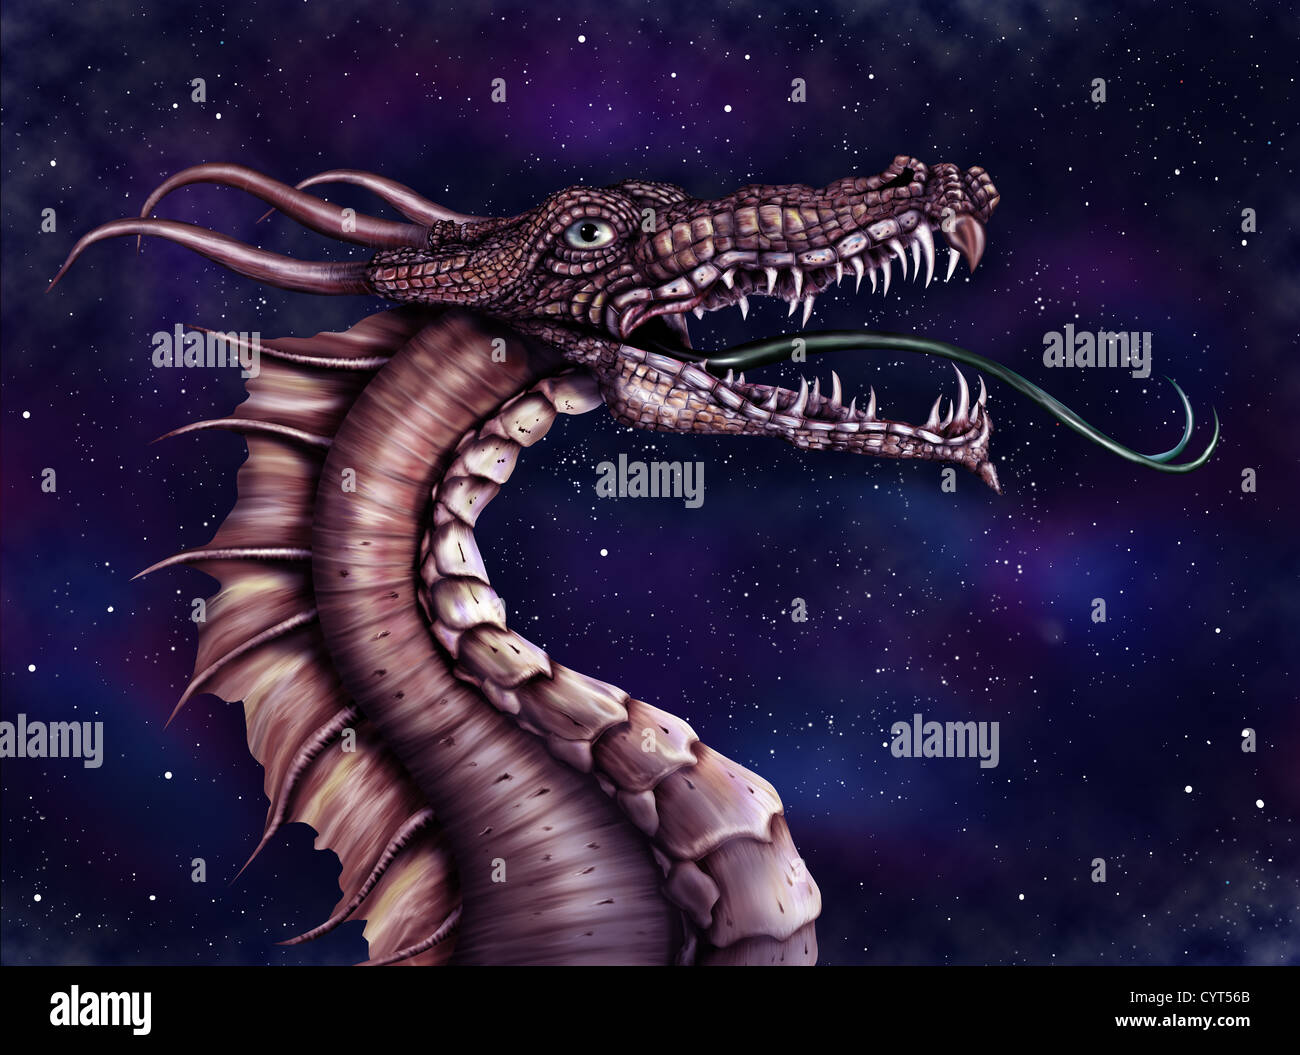 Illustration of a fierce dragon with a star filled night sky - Stock Image